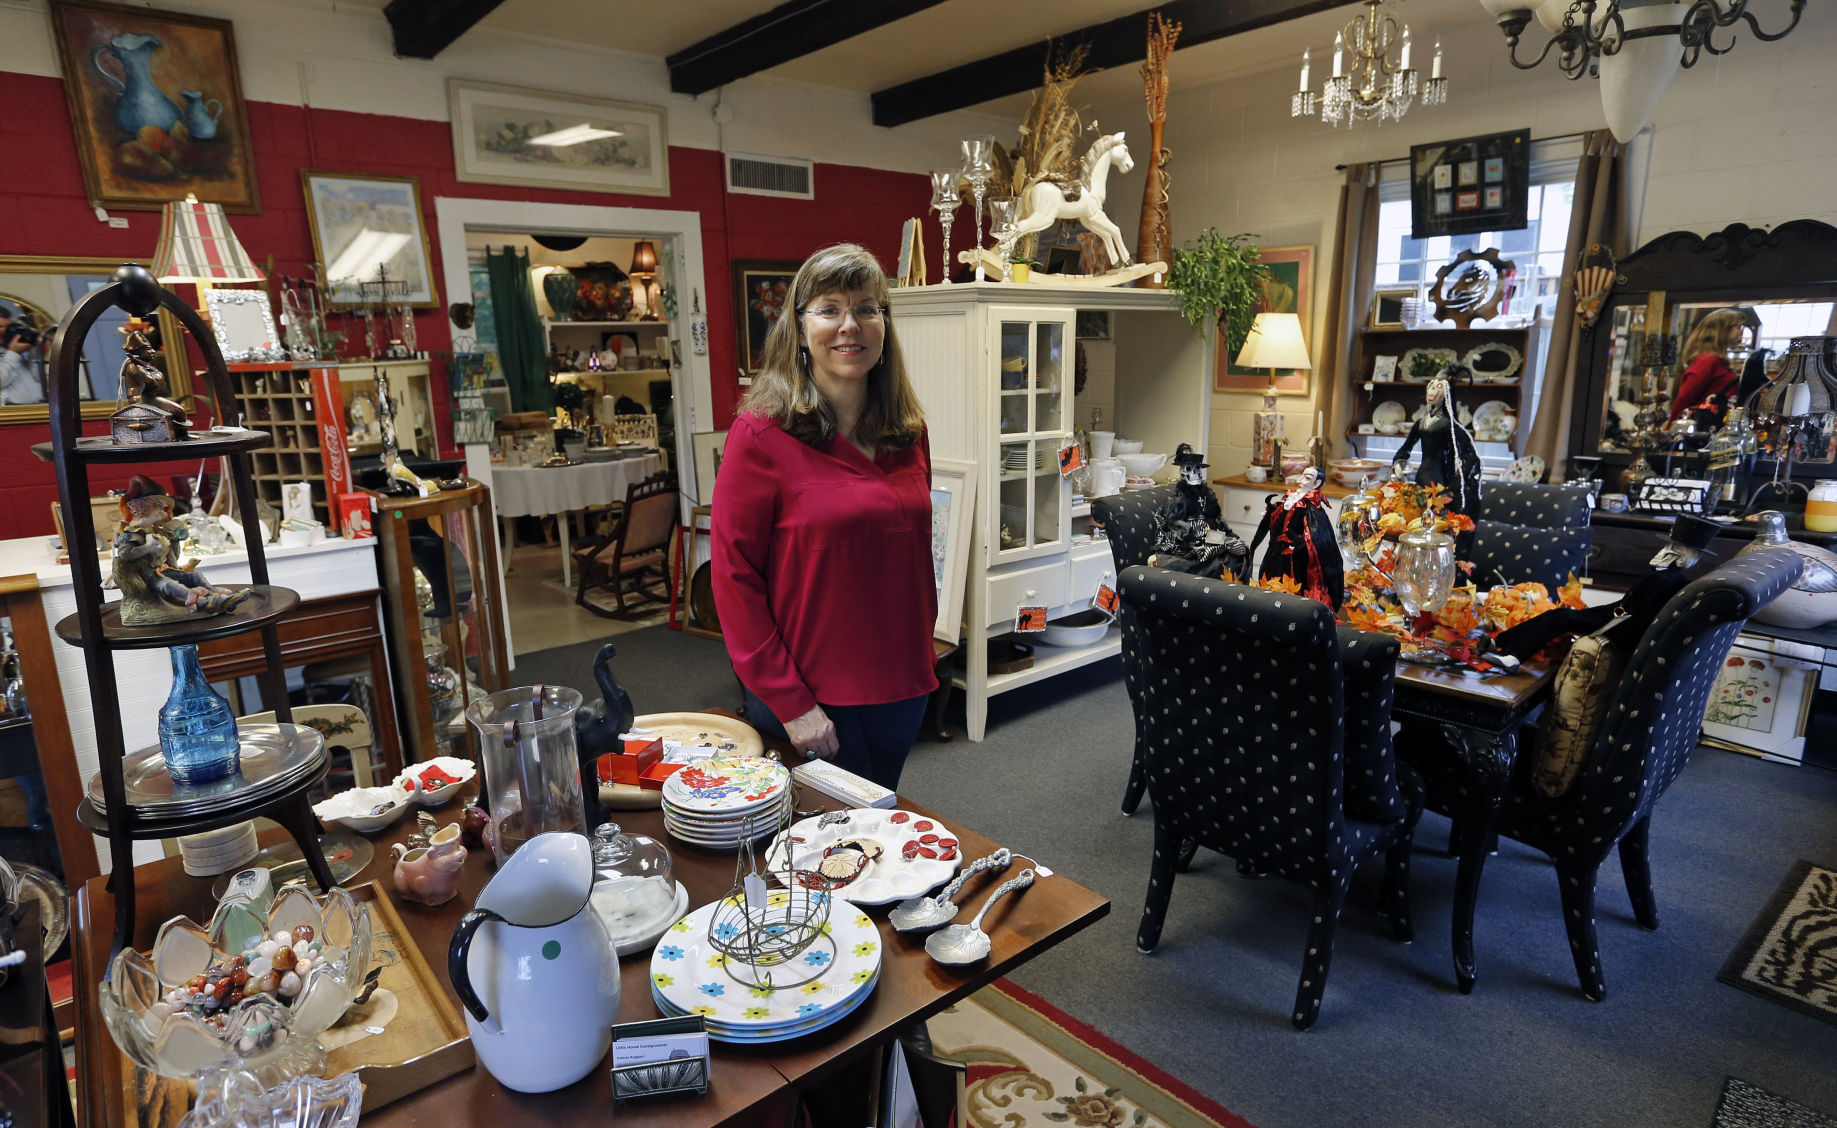 Attirant Trade Names: Little House Consignments Is Full Of Furniture And Jewelry  Items For Sale